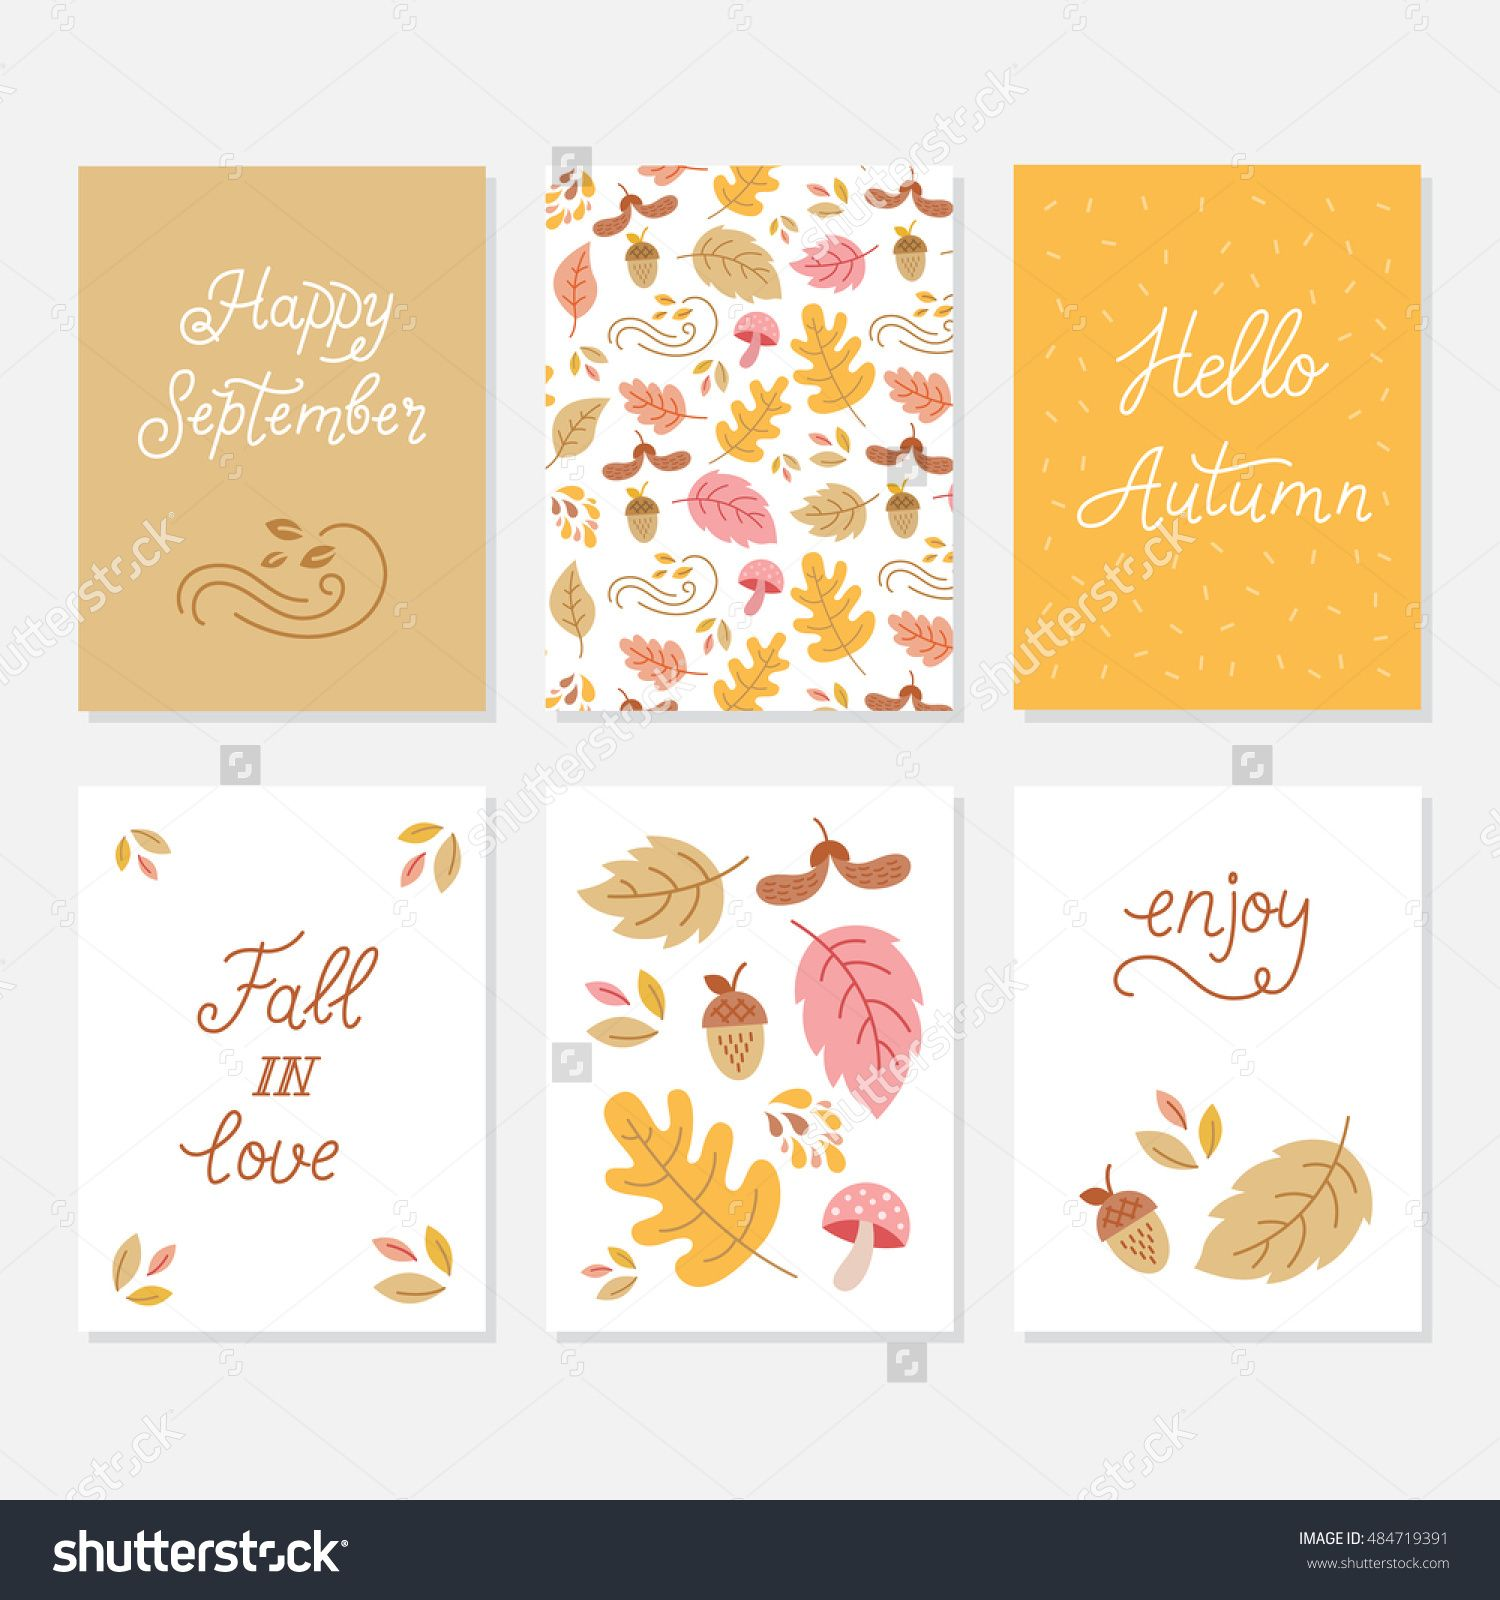 High Quality Happy September, Hello Autumn, Fall In Love, Enjoy   Phrases Set. Monoline  Calligraphy Quote Card Collection   Buy This Stock Vector On ...